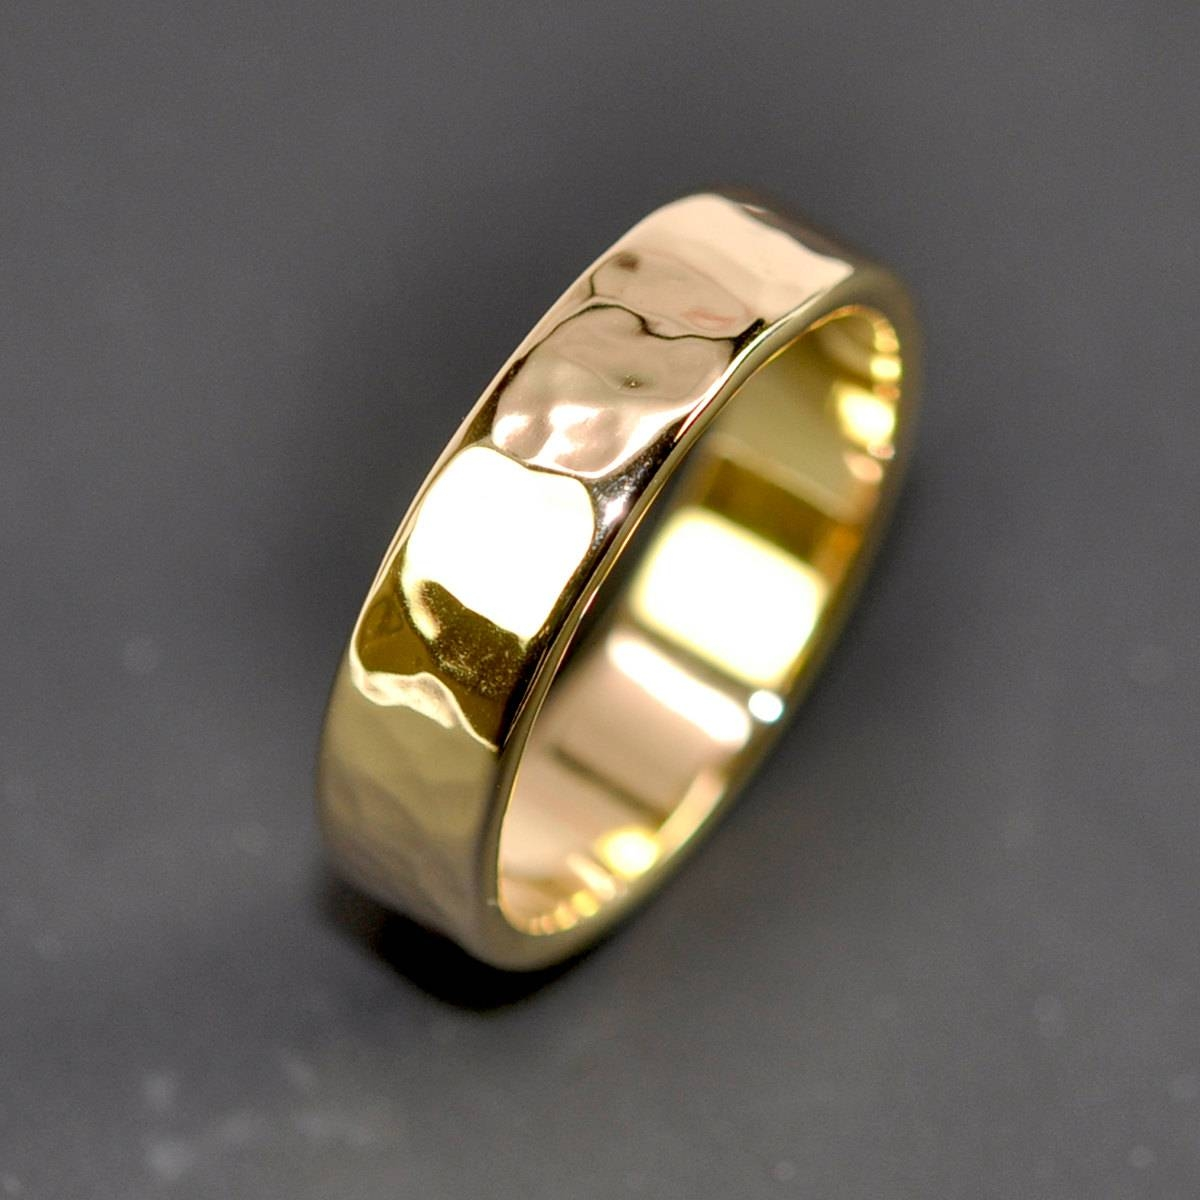 18K Yellow Gold Men's Wedding Band Hammered 5Mm Ring Sea With Regard To Hammered Wedding Bands For Men (View 1 of 15)